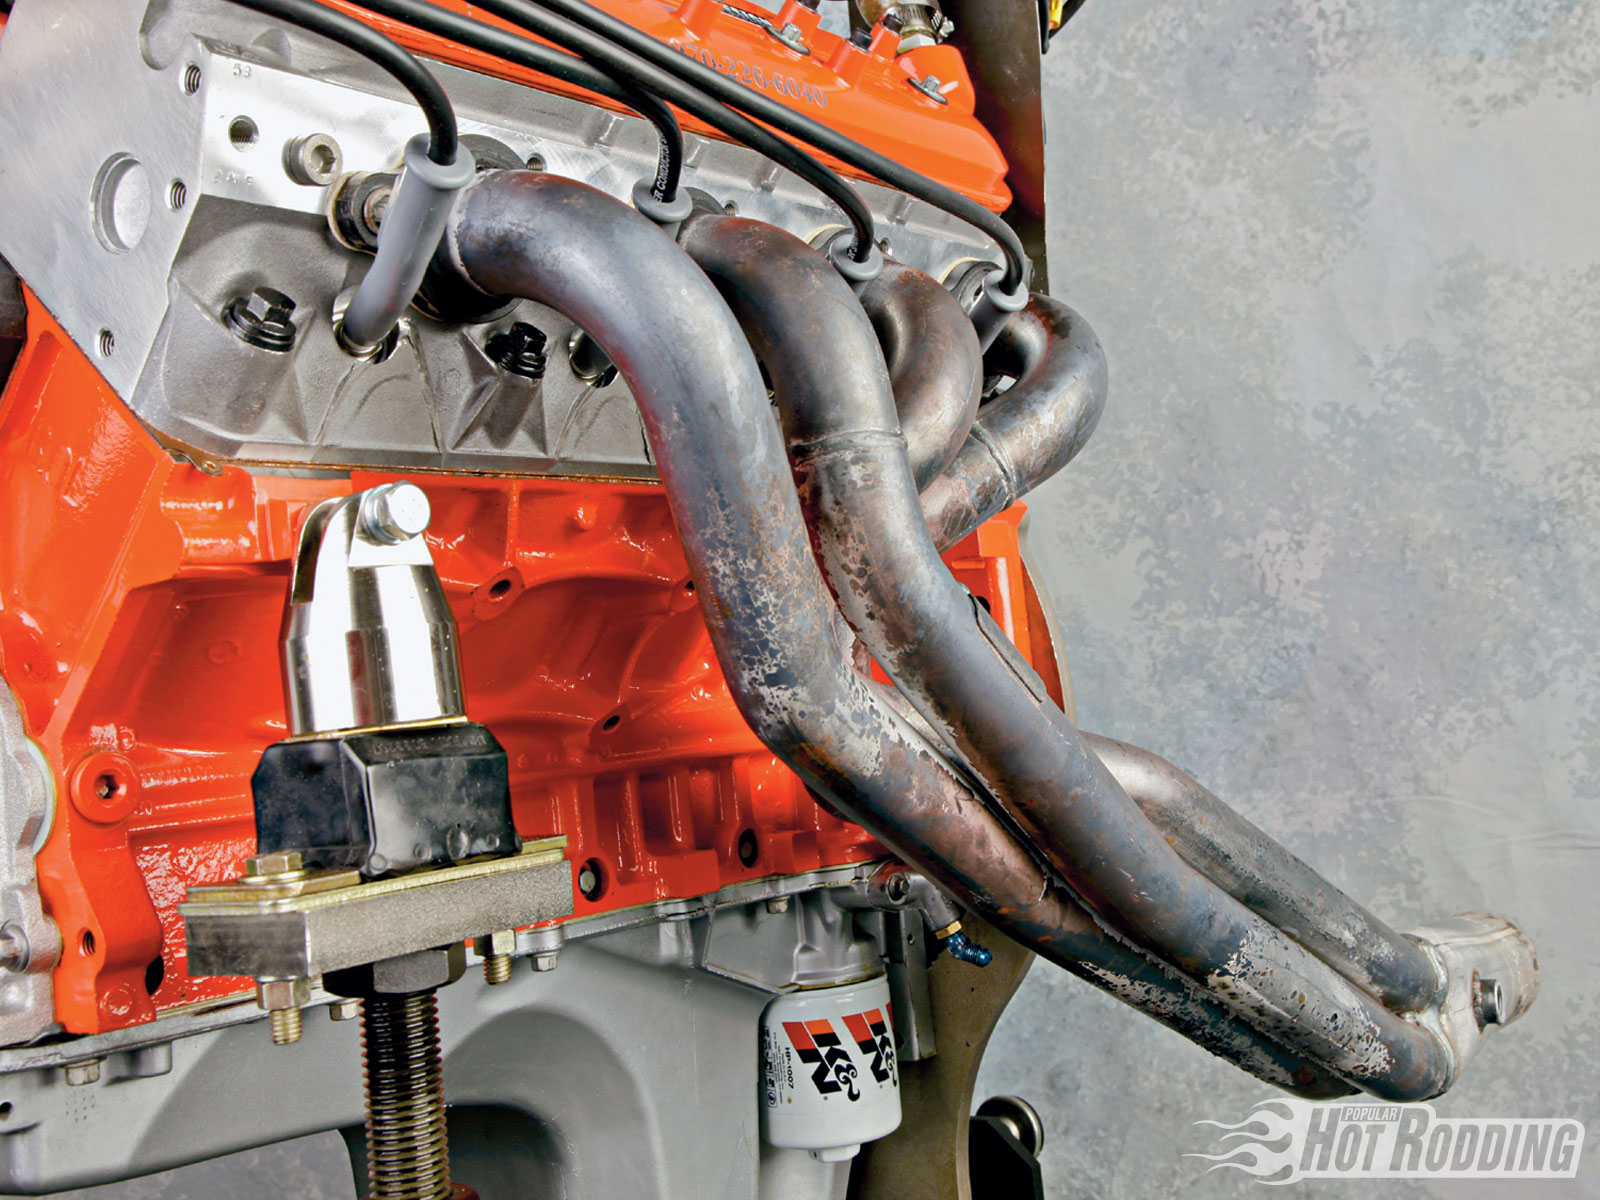 Pacesetter long-tube headers make good power and still fit a normal F-body chassis without much hassle. Built-in O2 bungs are designed for the factory fuel-injected engine, but make tuning with a wideband O2 sensor and a carburetor much easier.